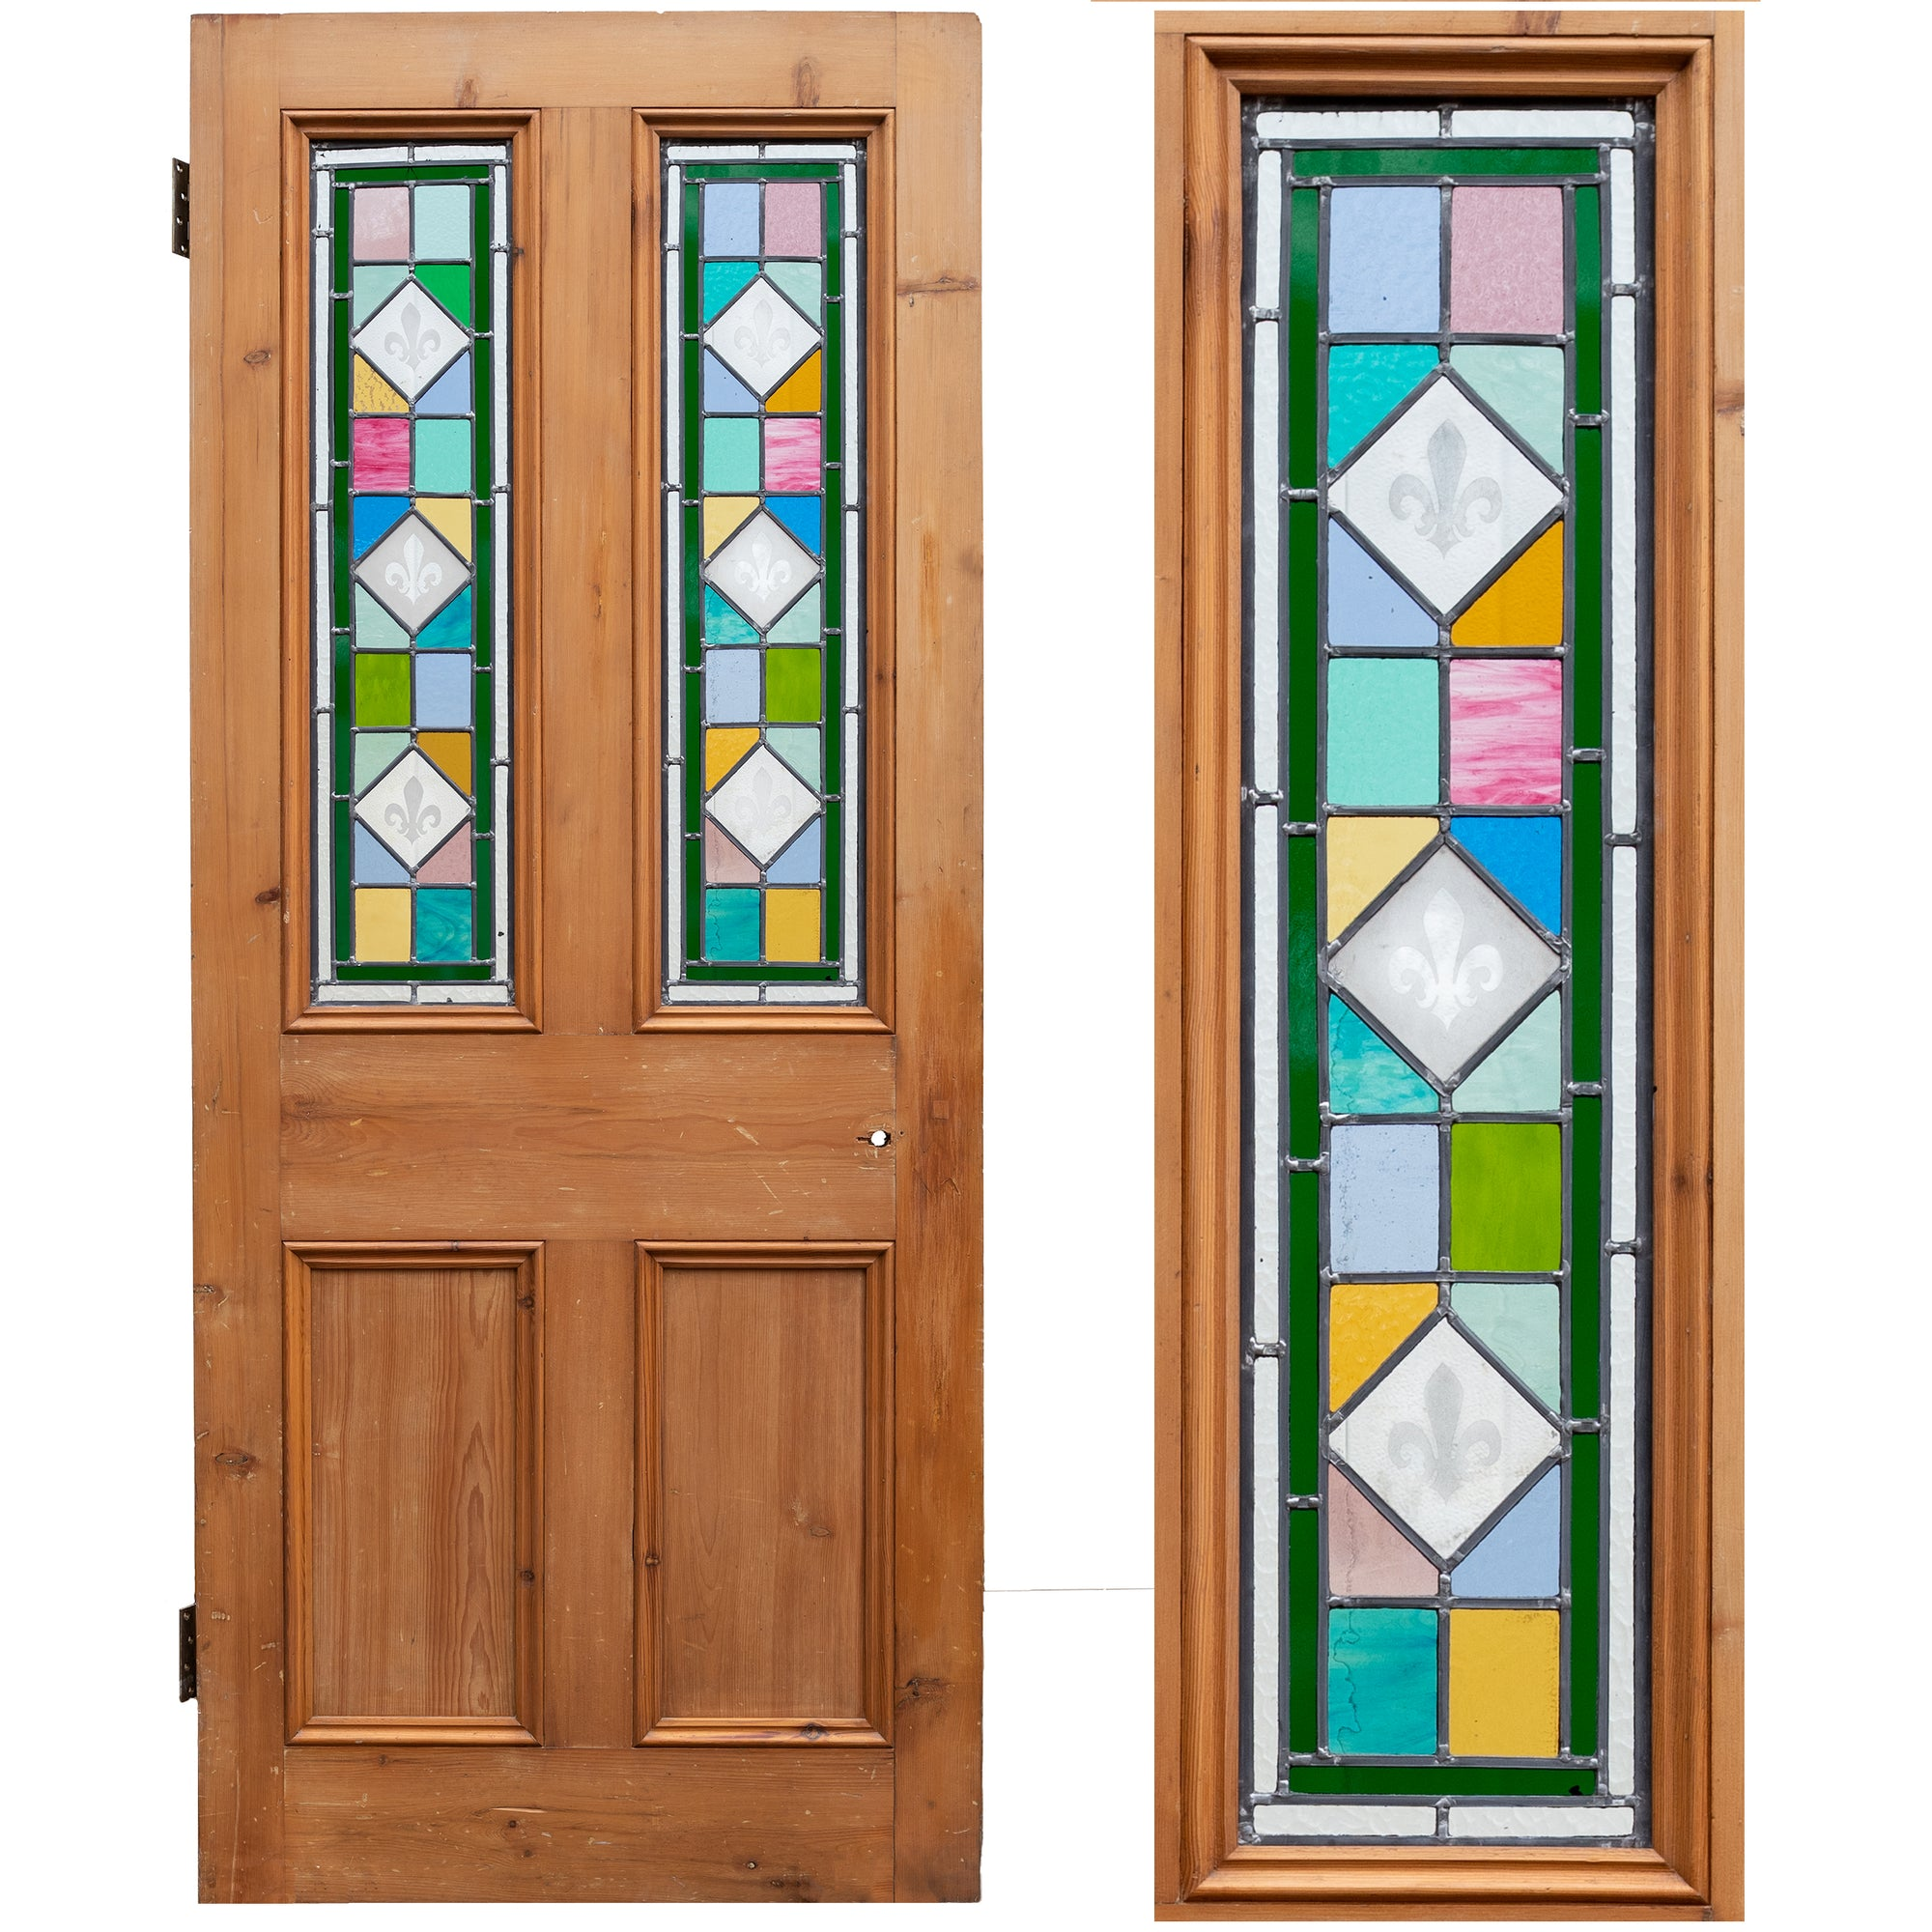 Antique Victorian Stained Glass Door - 203cm x 84cm | The Architectural Forum